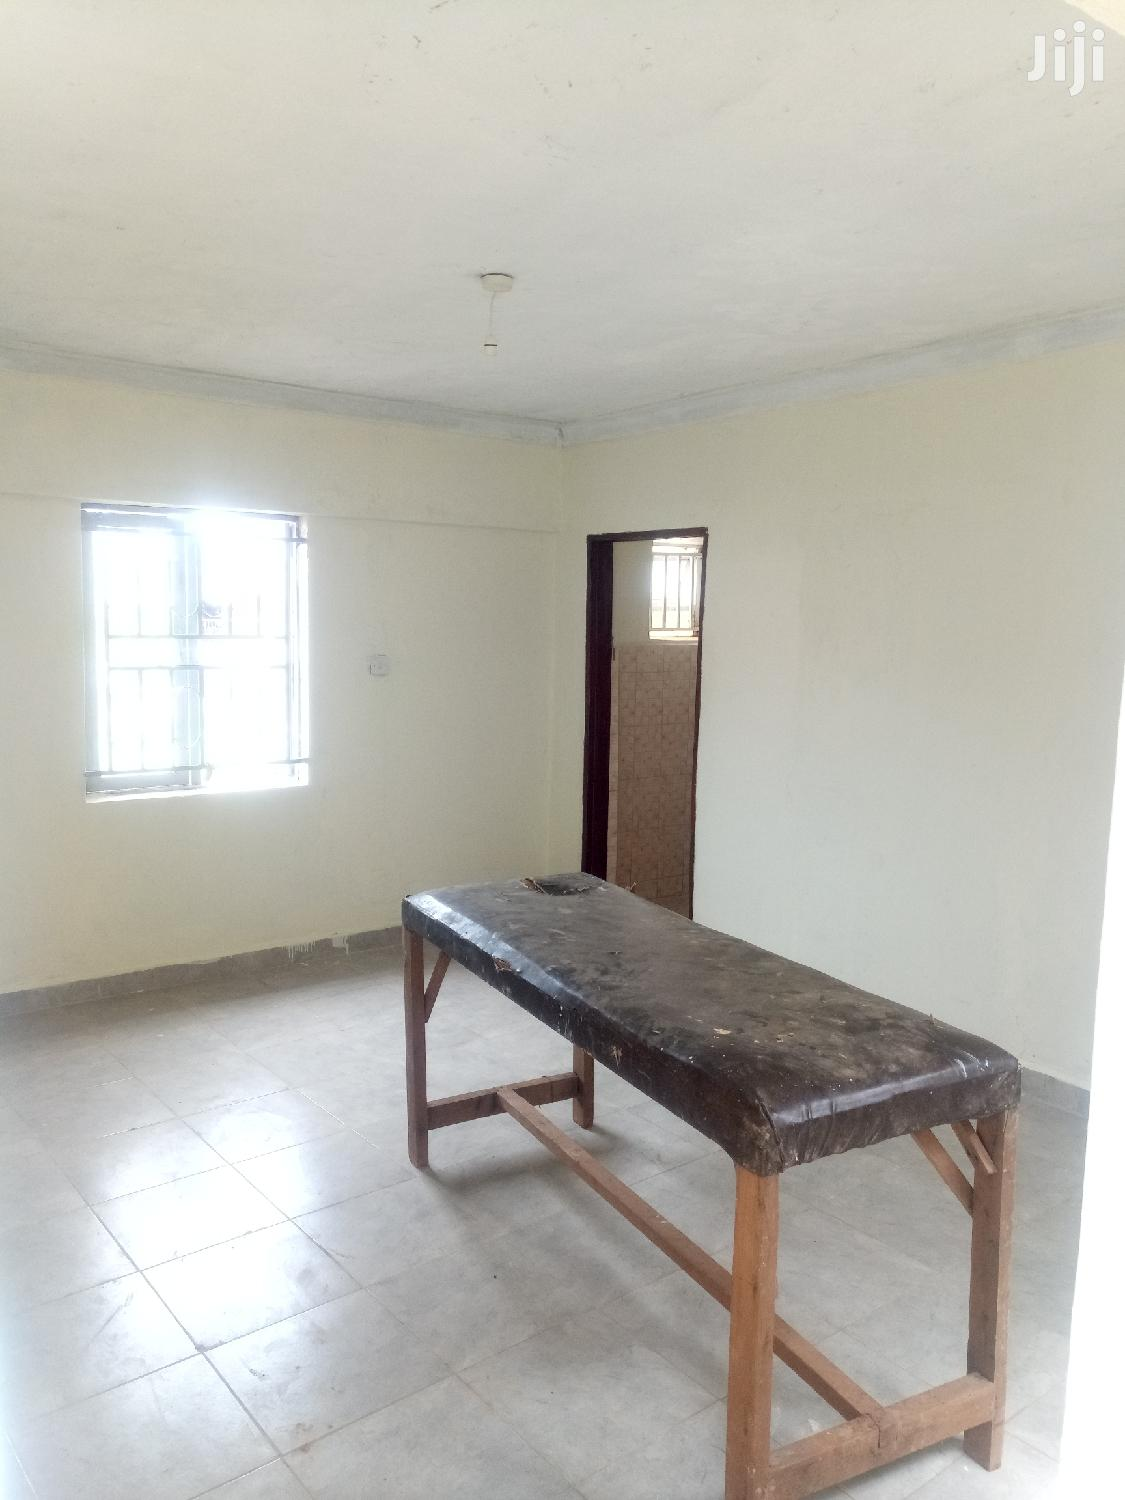 Mutungo Big Single Room House for Rent | Houses & Apartments For Rent for sale in Kampala, Central Region, Uganda